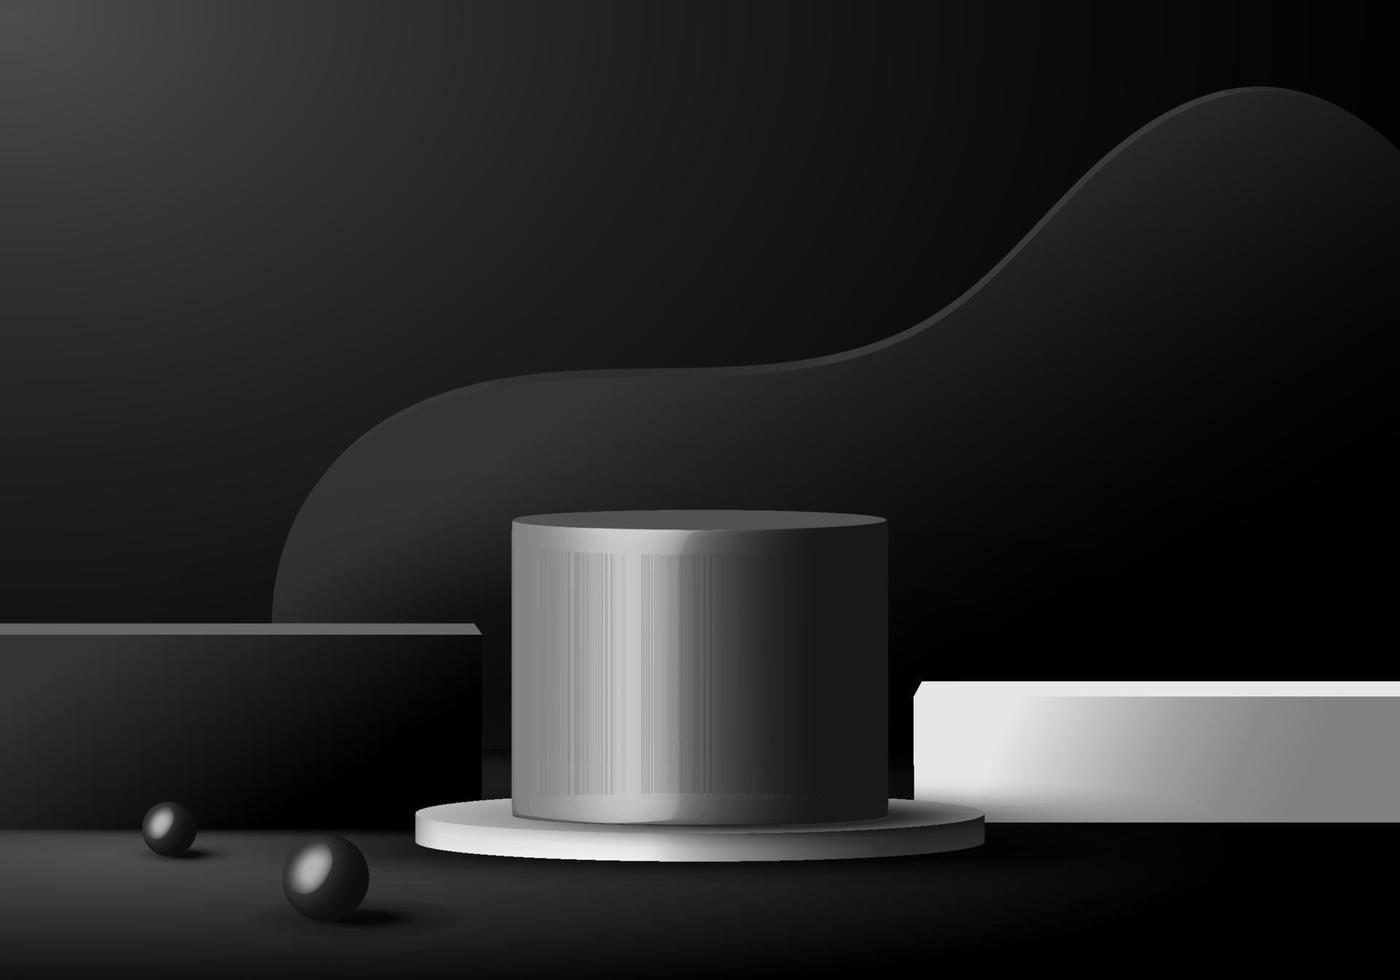 3D minimal scene black and white podiums geometric forms in dark background. vector